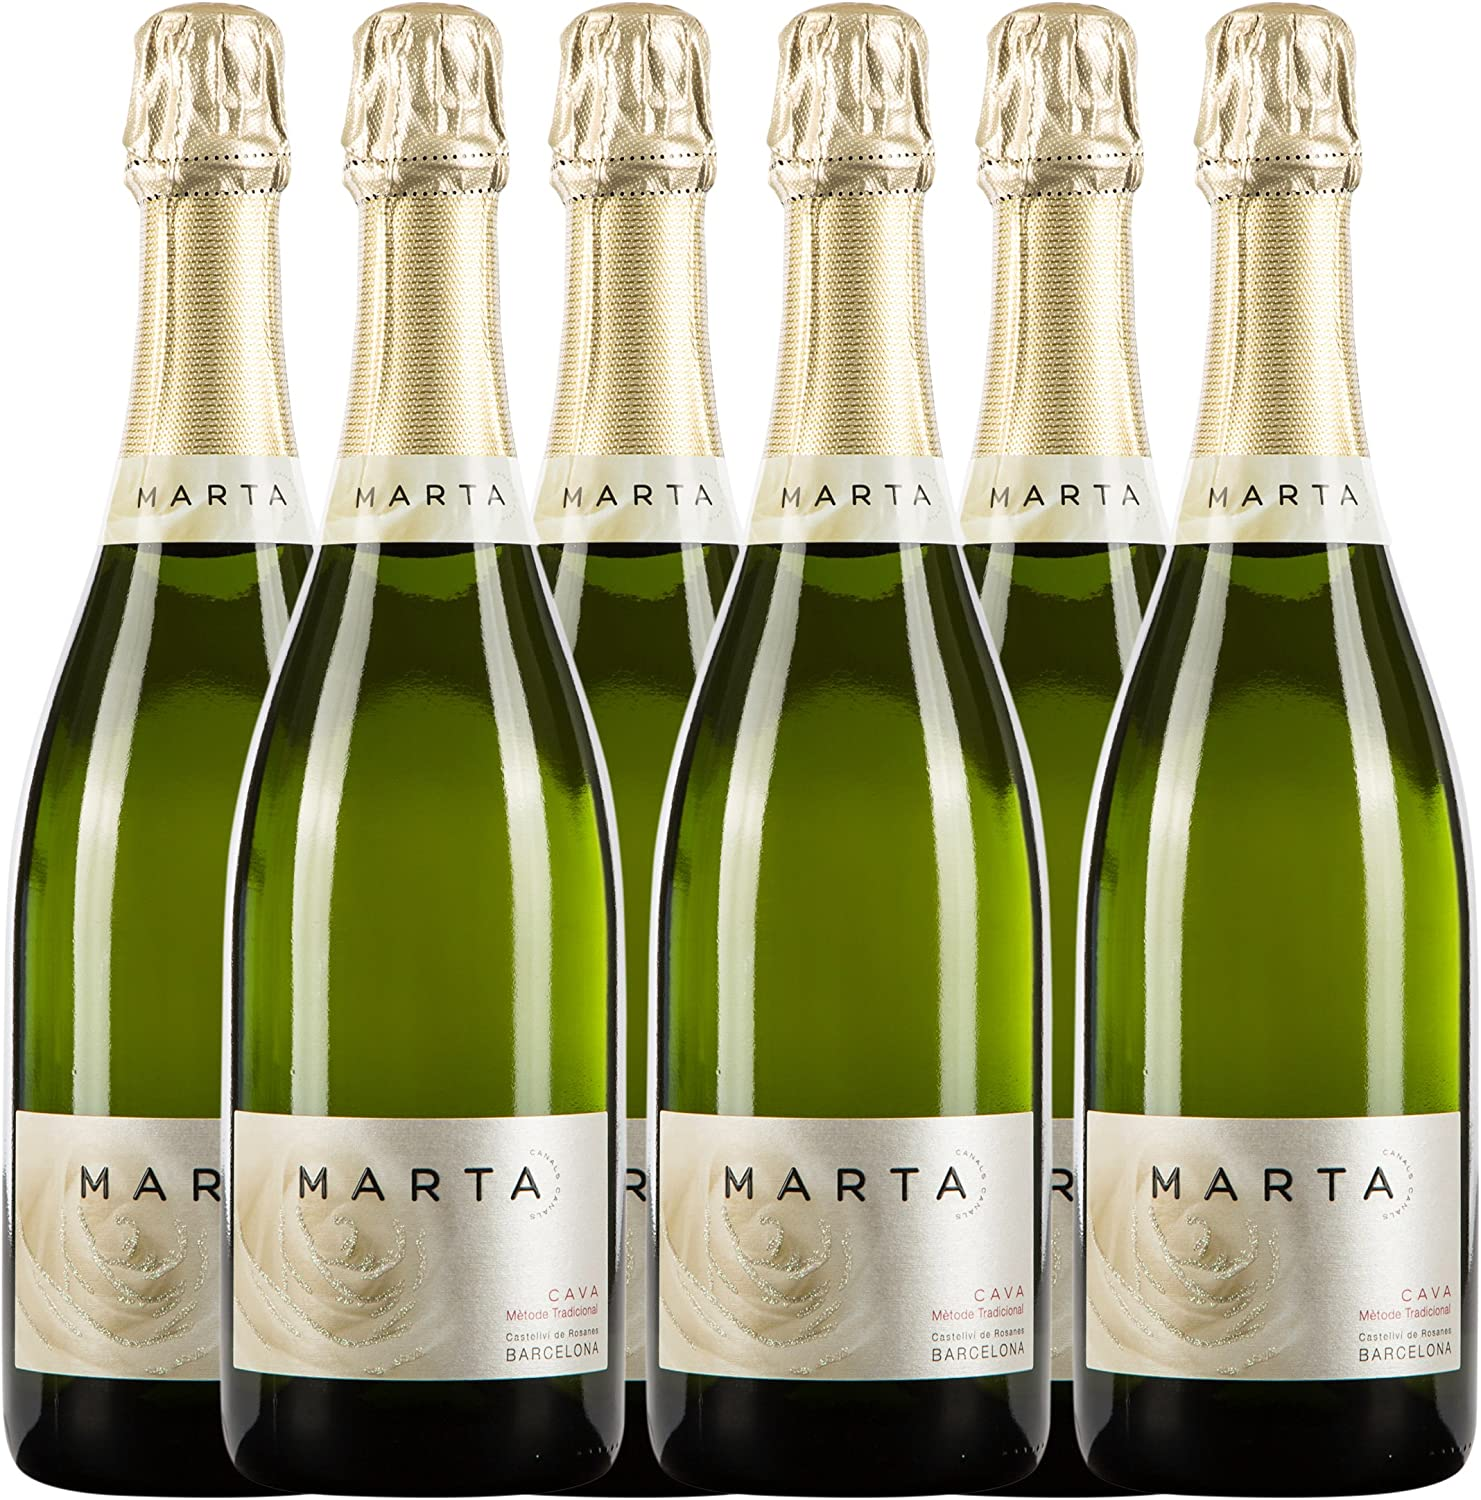 Sanders Selection Marta Canals Brut Vino - Paquete de 6 x 750 ml ...